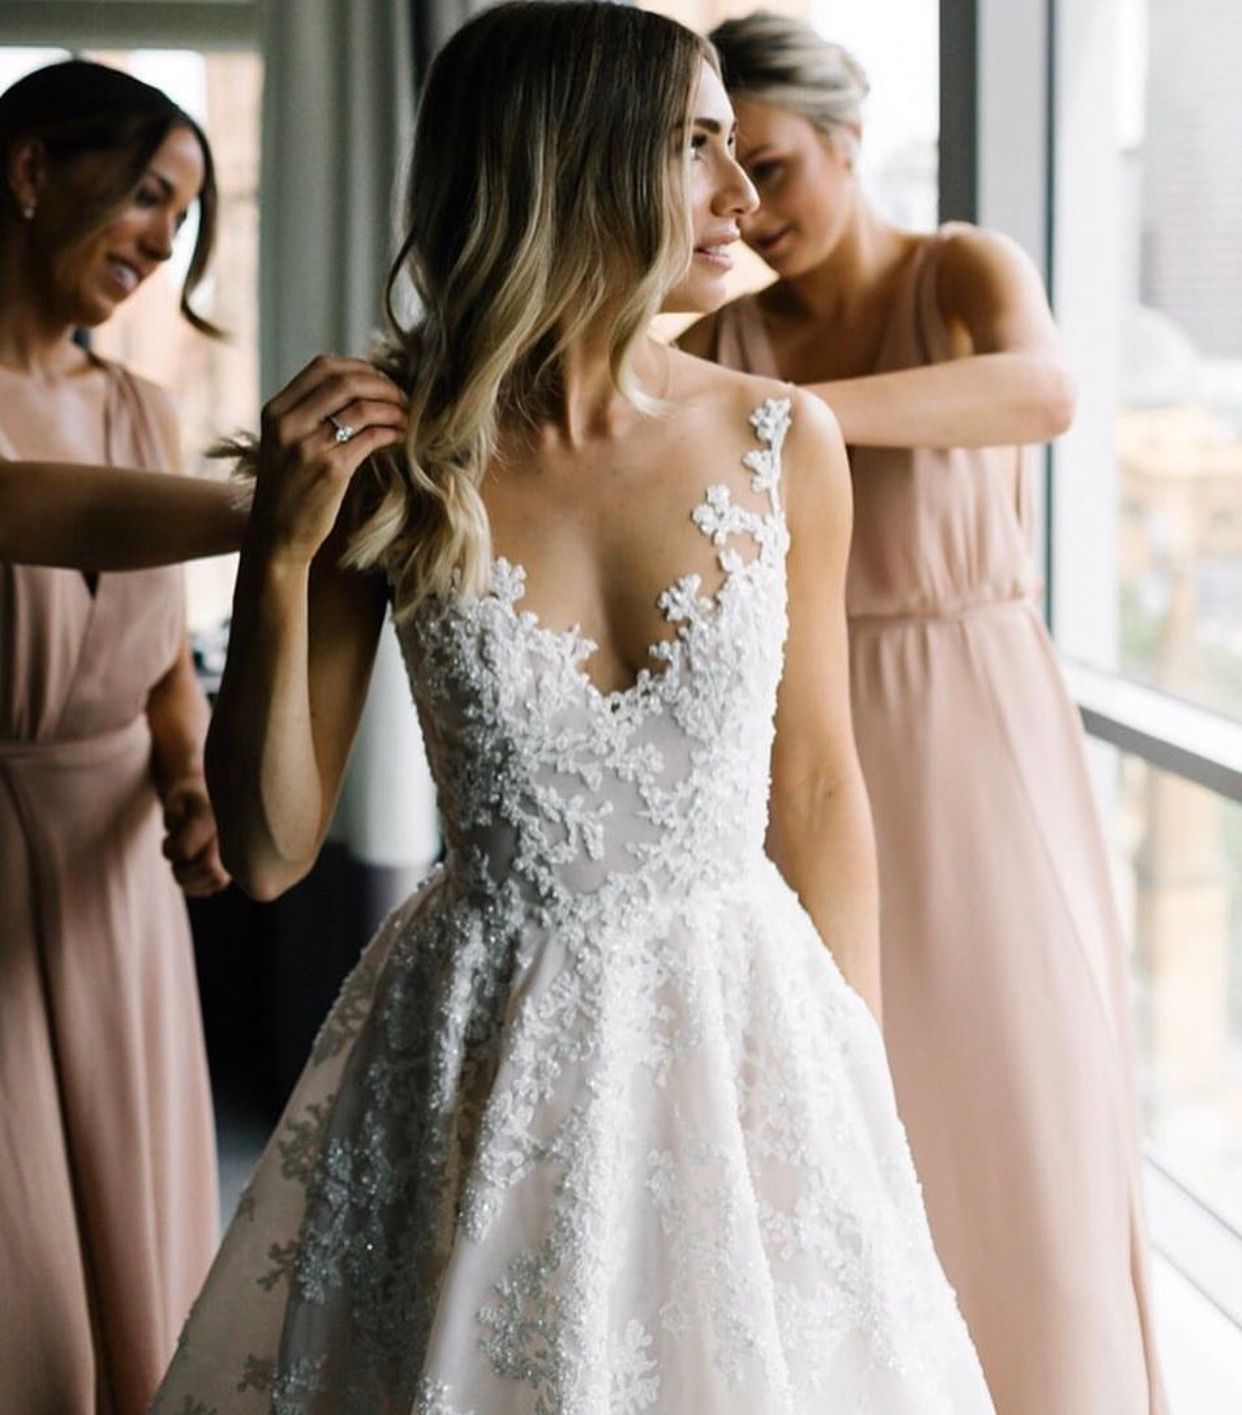 Too much cleavage wedding dress  Pin by Haley LaBrasca on Wedding  Pinterest  Wedding Wedding